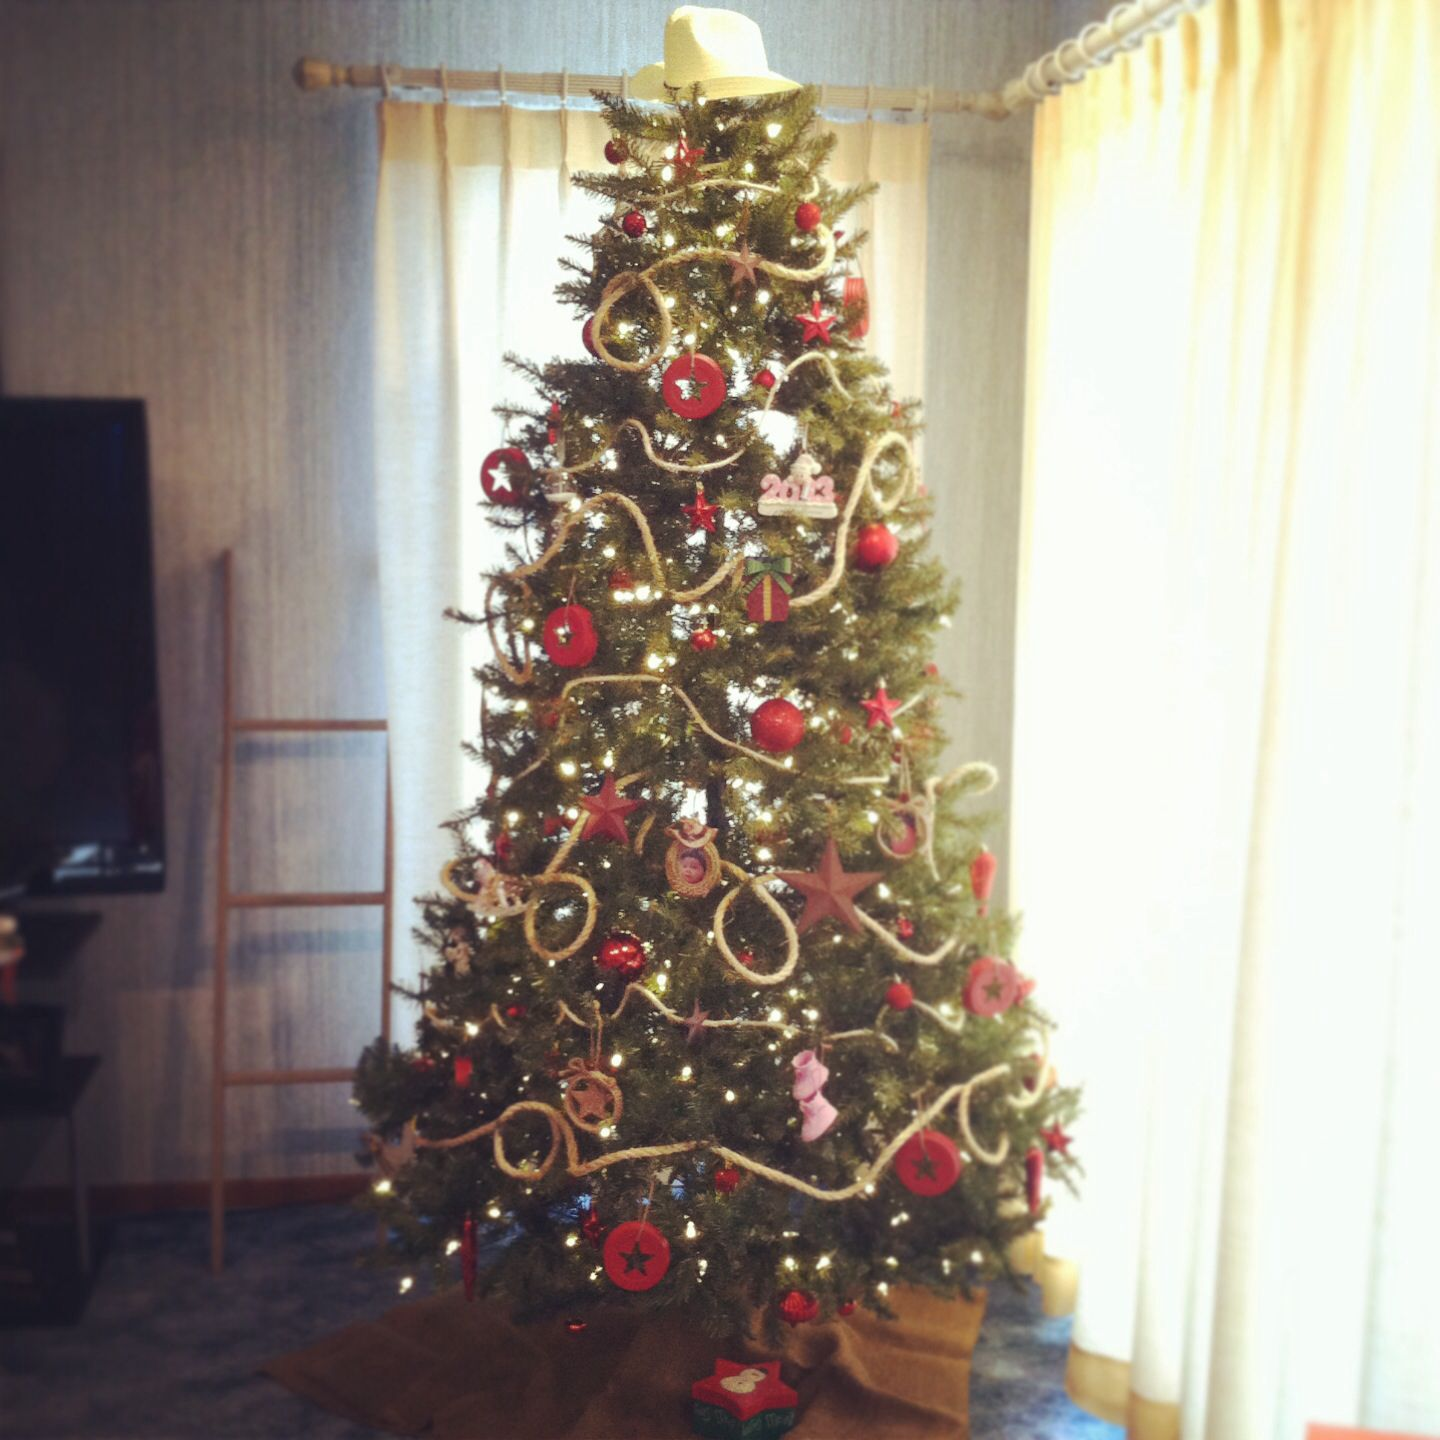 Western Christmas Tree Decorations.Rope Cowboy Hat And All Rustic Country Christmas Tree